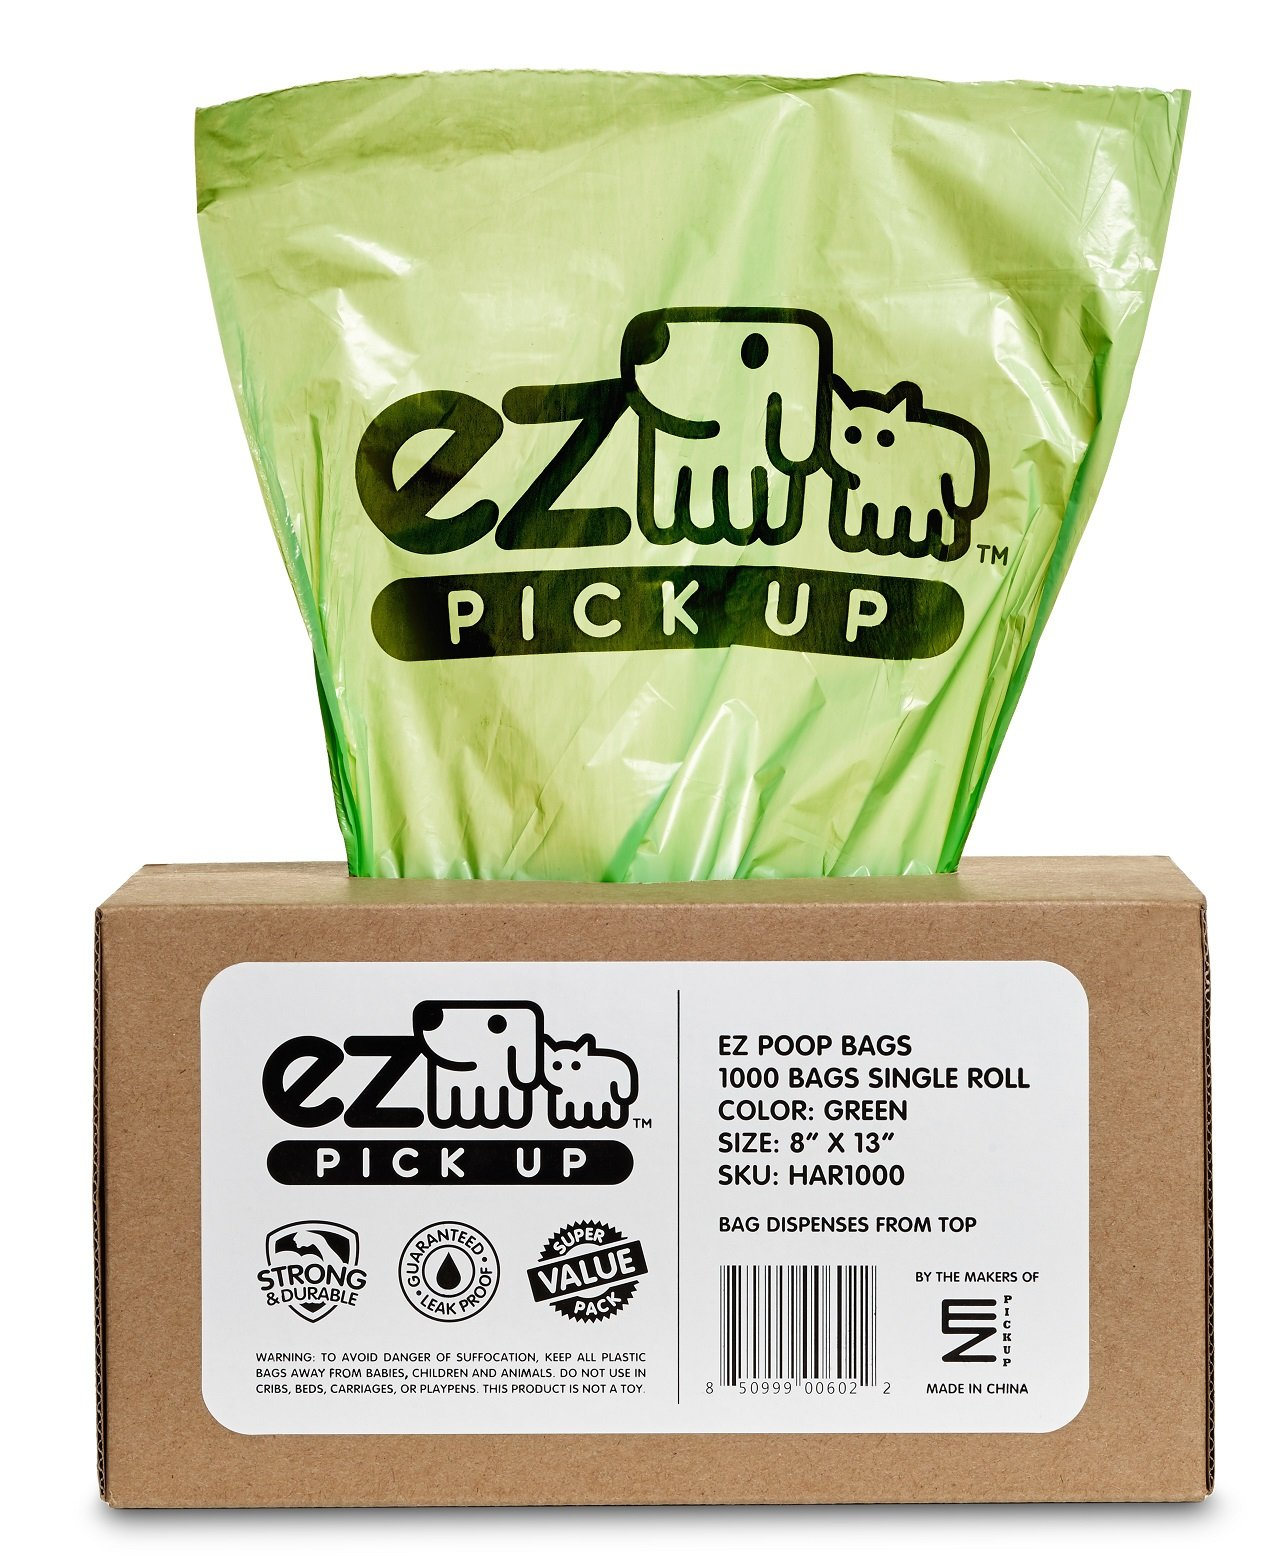 1000 Pet Waste Disposal Dog Poop Bags, EZ Pickup Bags Green (single roll, not on small rolls)